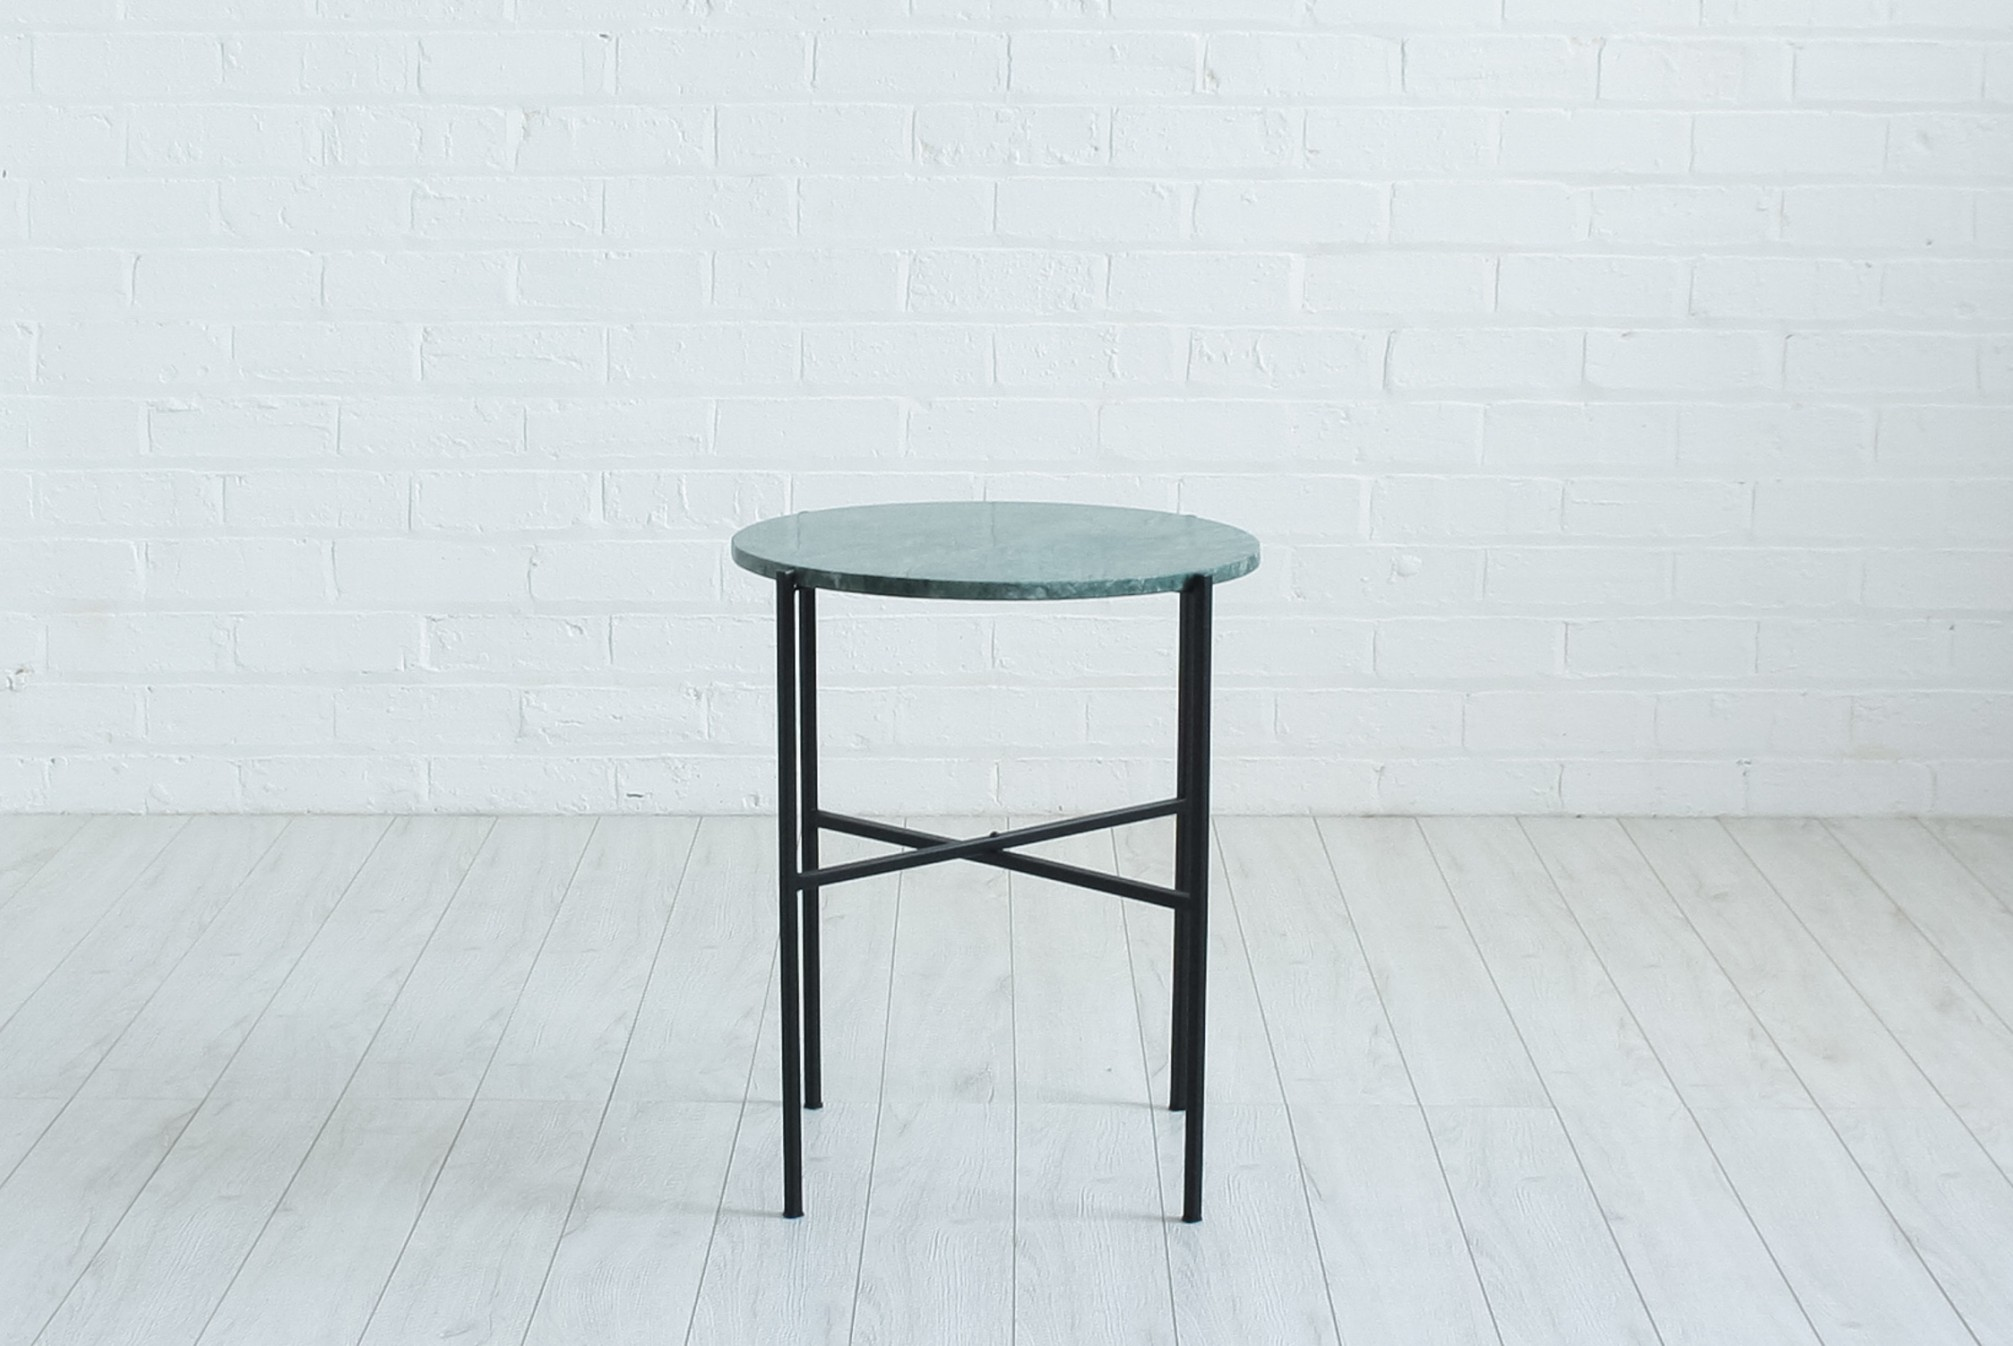 green marble side table new stock outdoor white coffee set bathroom black trestle wooden garden small stackable tables gold metal and glass end high accent distressed next dining